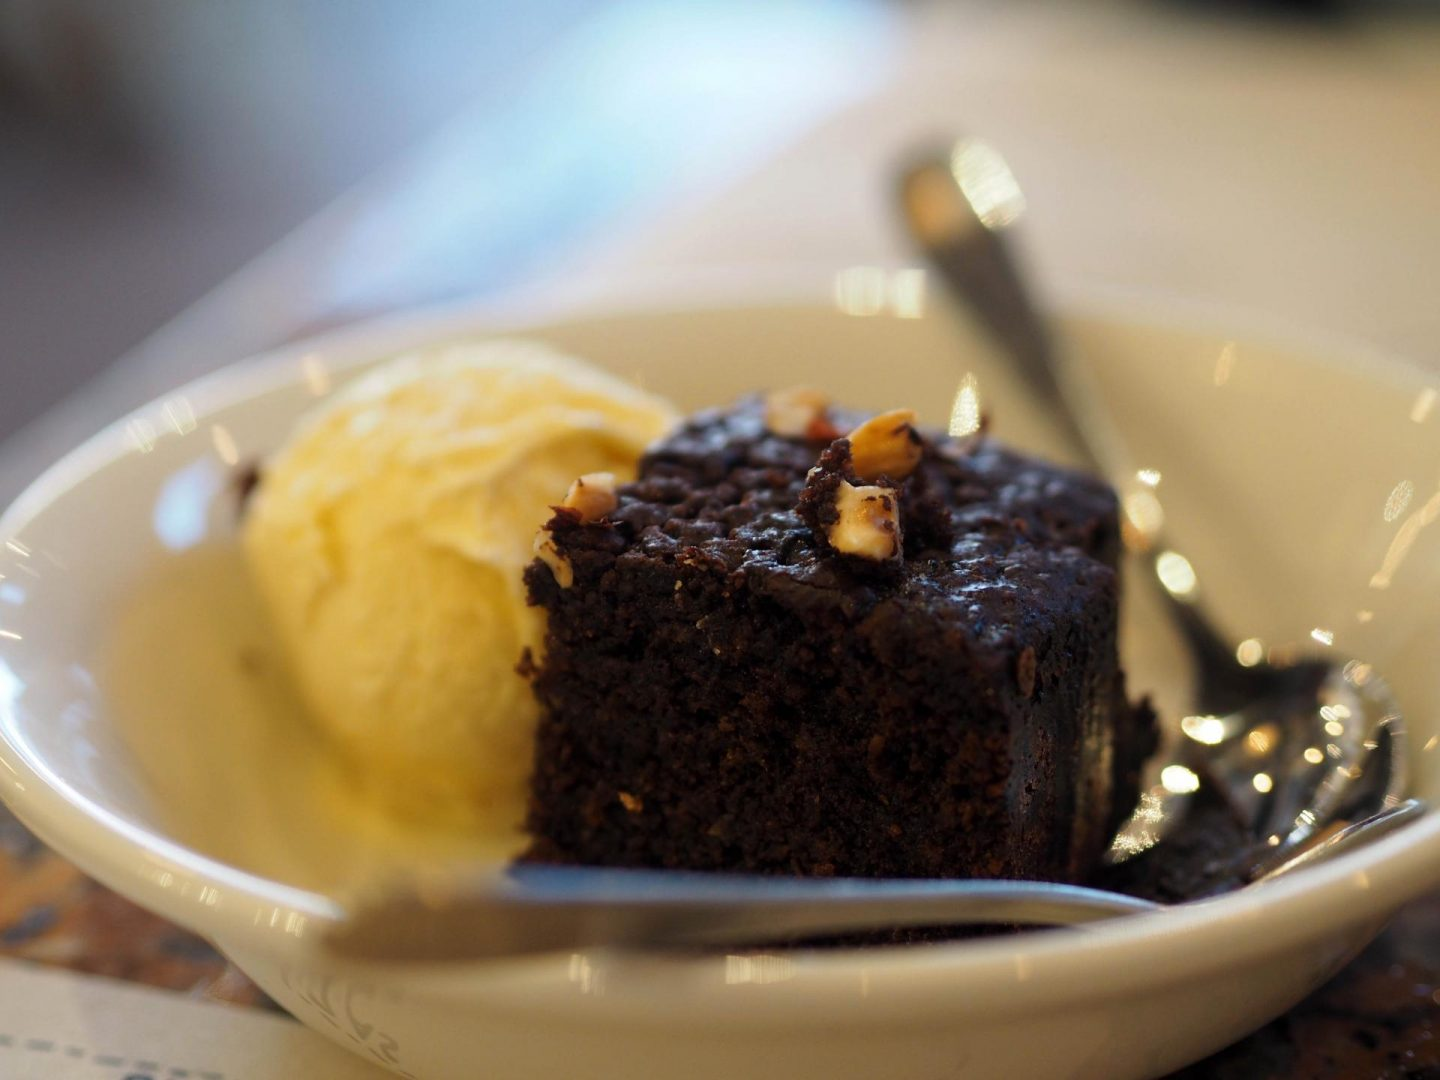 Franco Manca, Brighton Marina - Chocolate and Hazelnut Cake